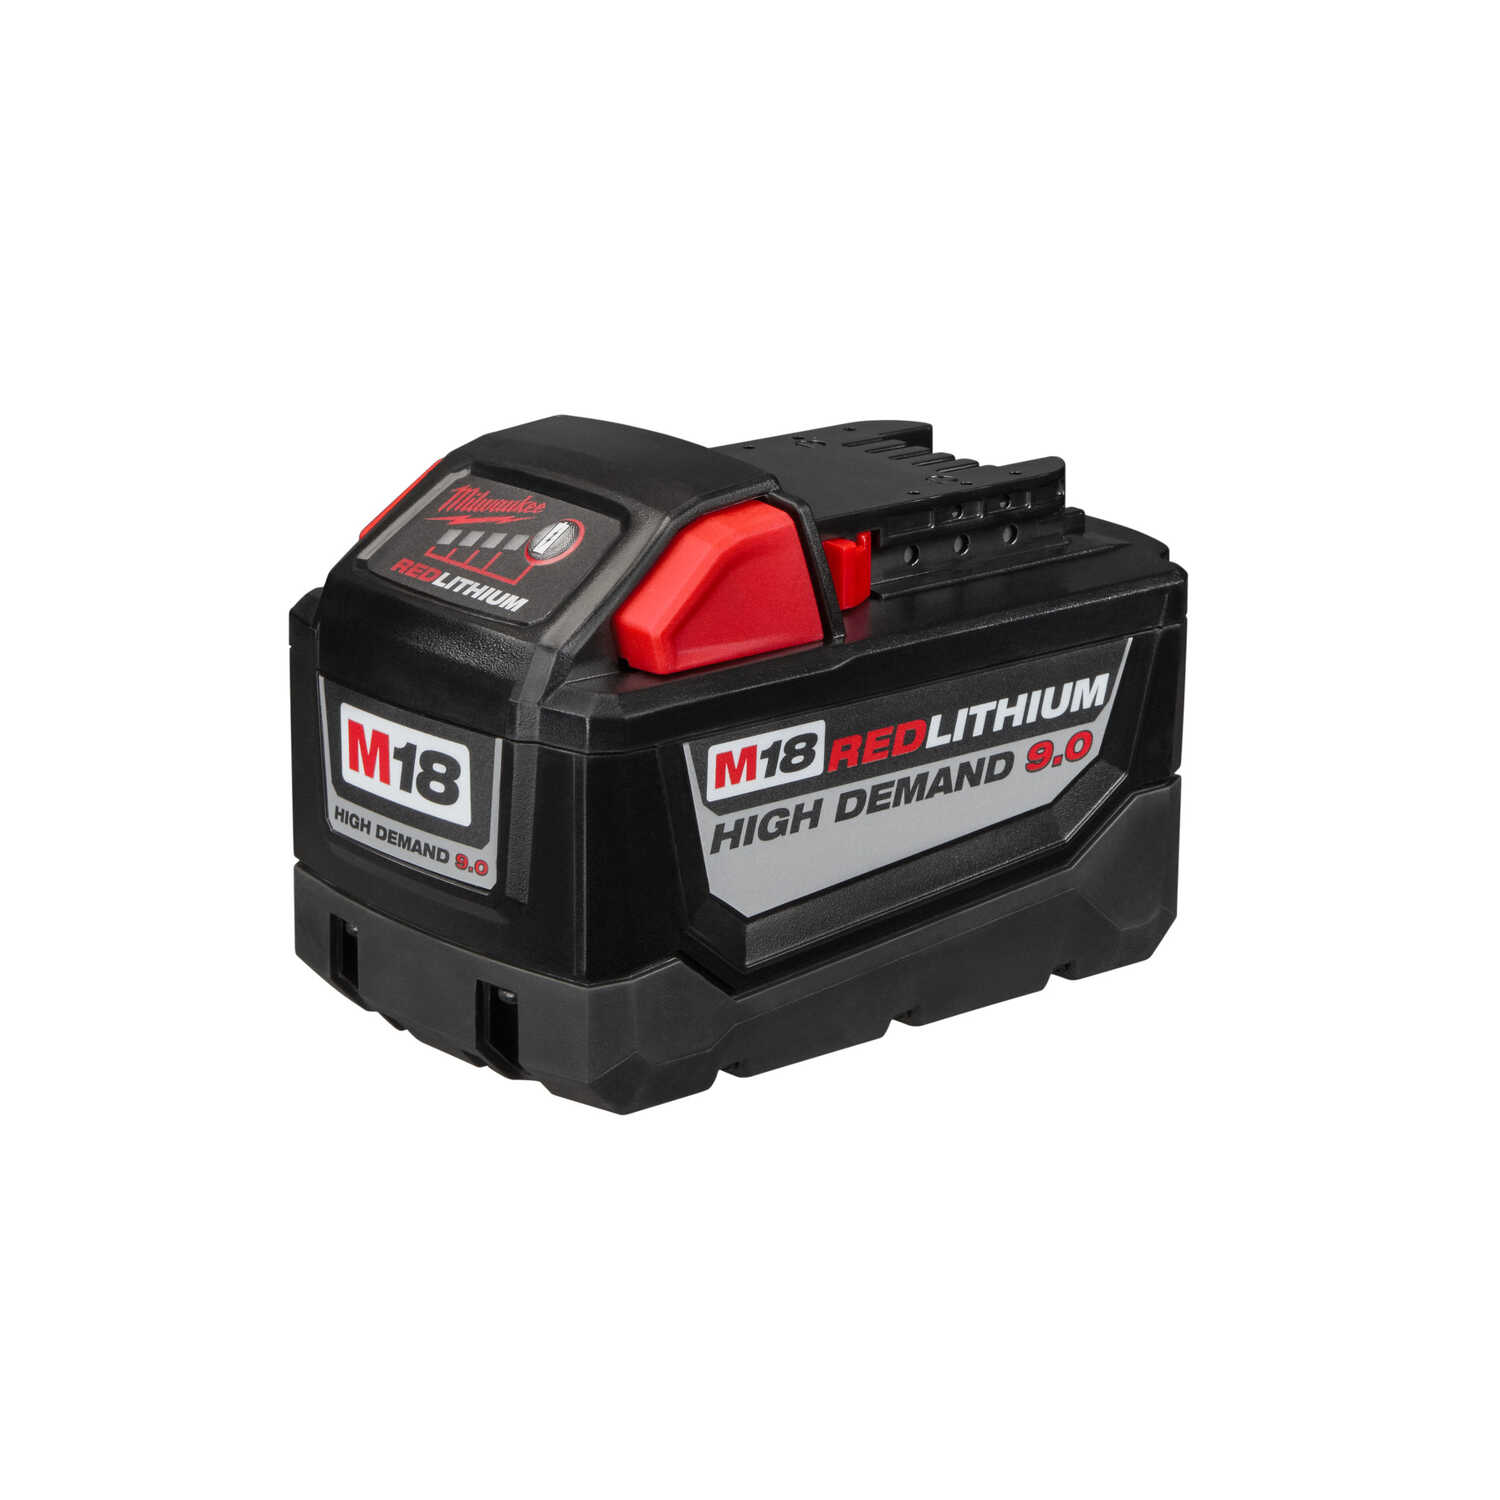 Milwaukee  M18 REDLITHIUM  HD9.0  18 volt 9 Ah Lithium-Ion  High Capacity Battery Pack  1 pc.